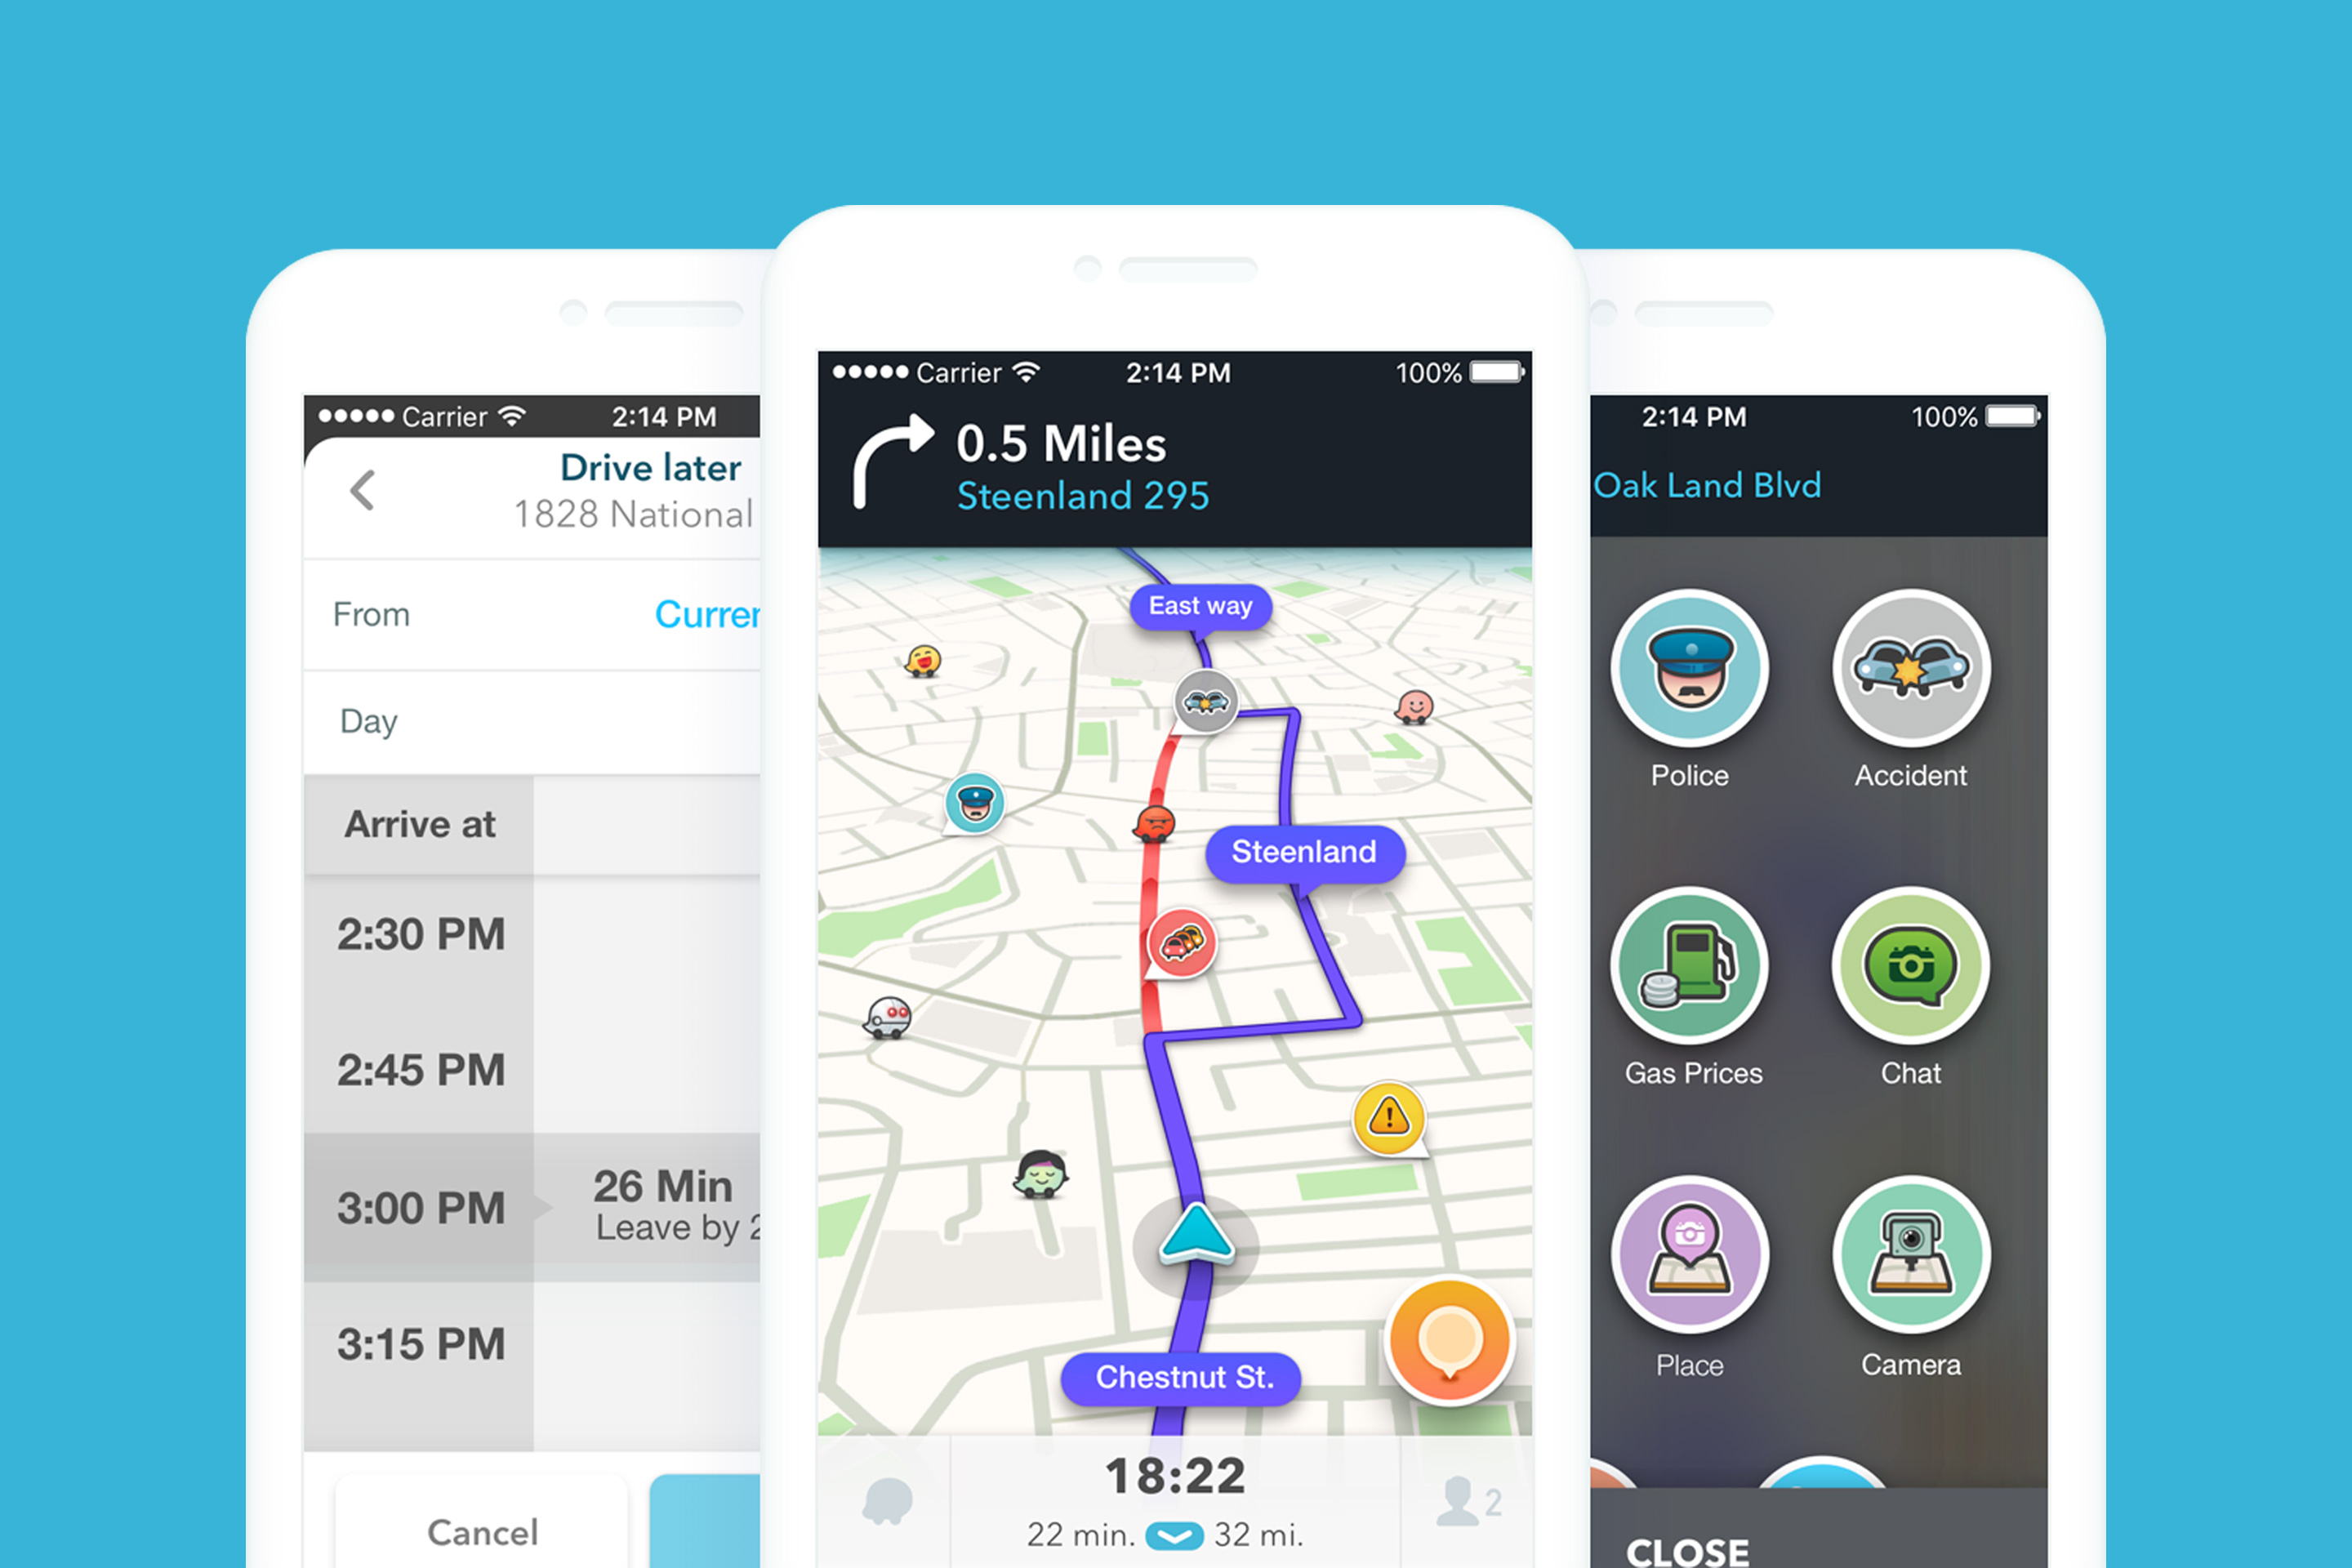 What Makes Waze the Best Reviewed Map App? An Army of Unpaid ... on learn world map, power world map, production world map, people world map, use world map, textbook world map, ideology world map, school world map, excel dashboard world map, race world map, prayer world map, principle world map, culture world map, nature world map, game world map, time world map, love world map, policy world map, change world map, life world map,